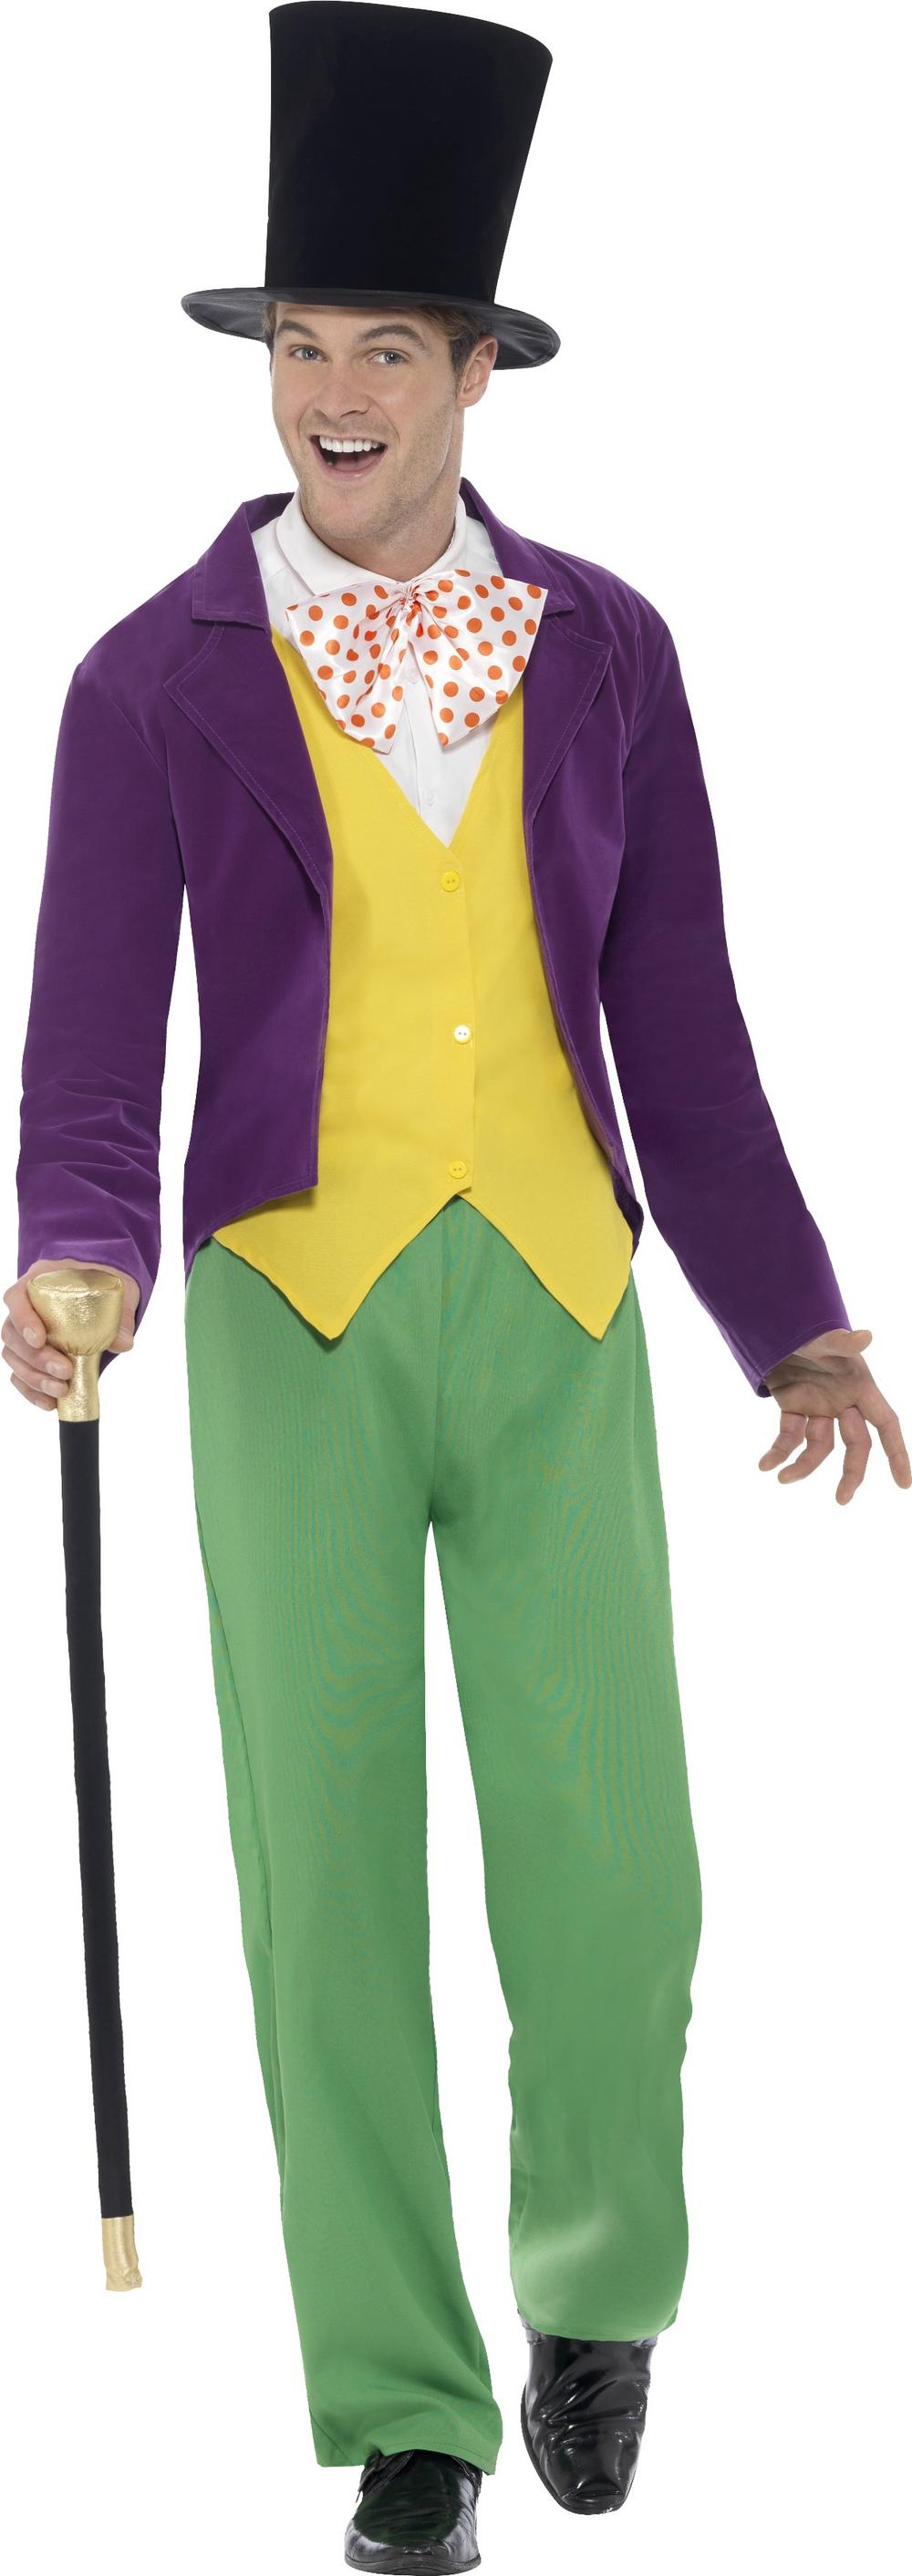 Roald Dahl Willy Wonka Mens Costume